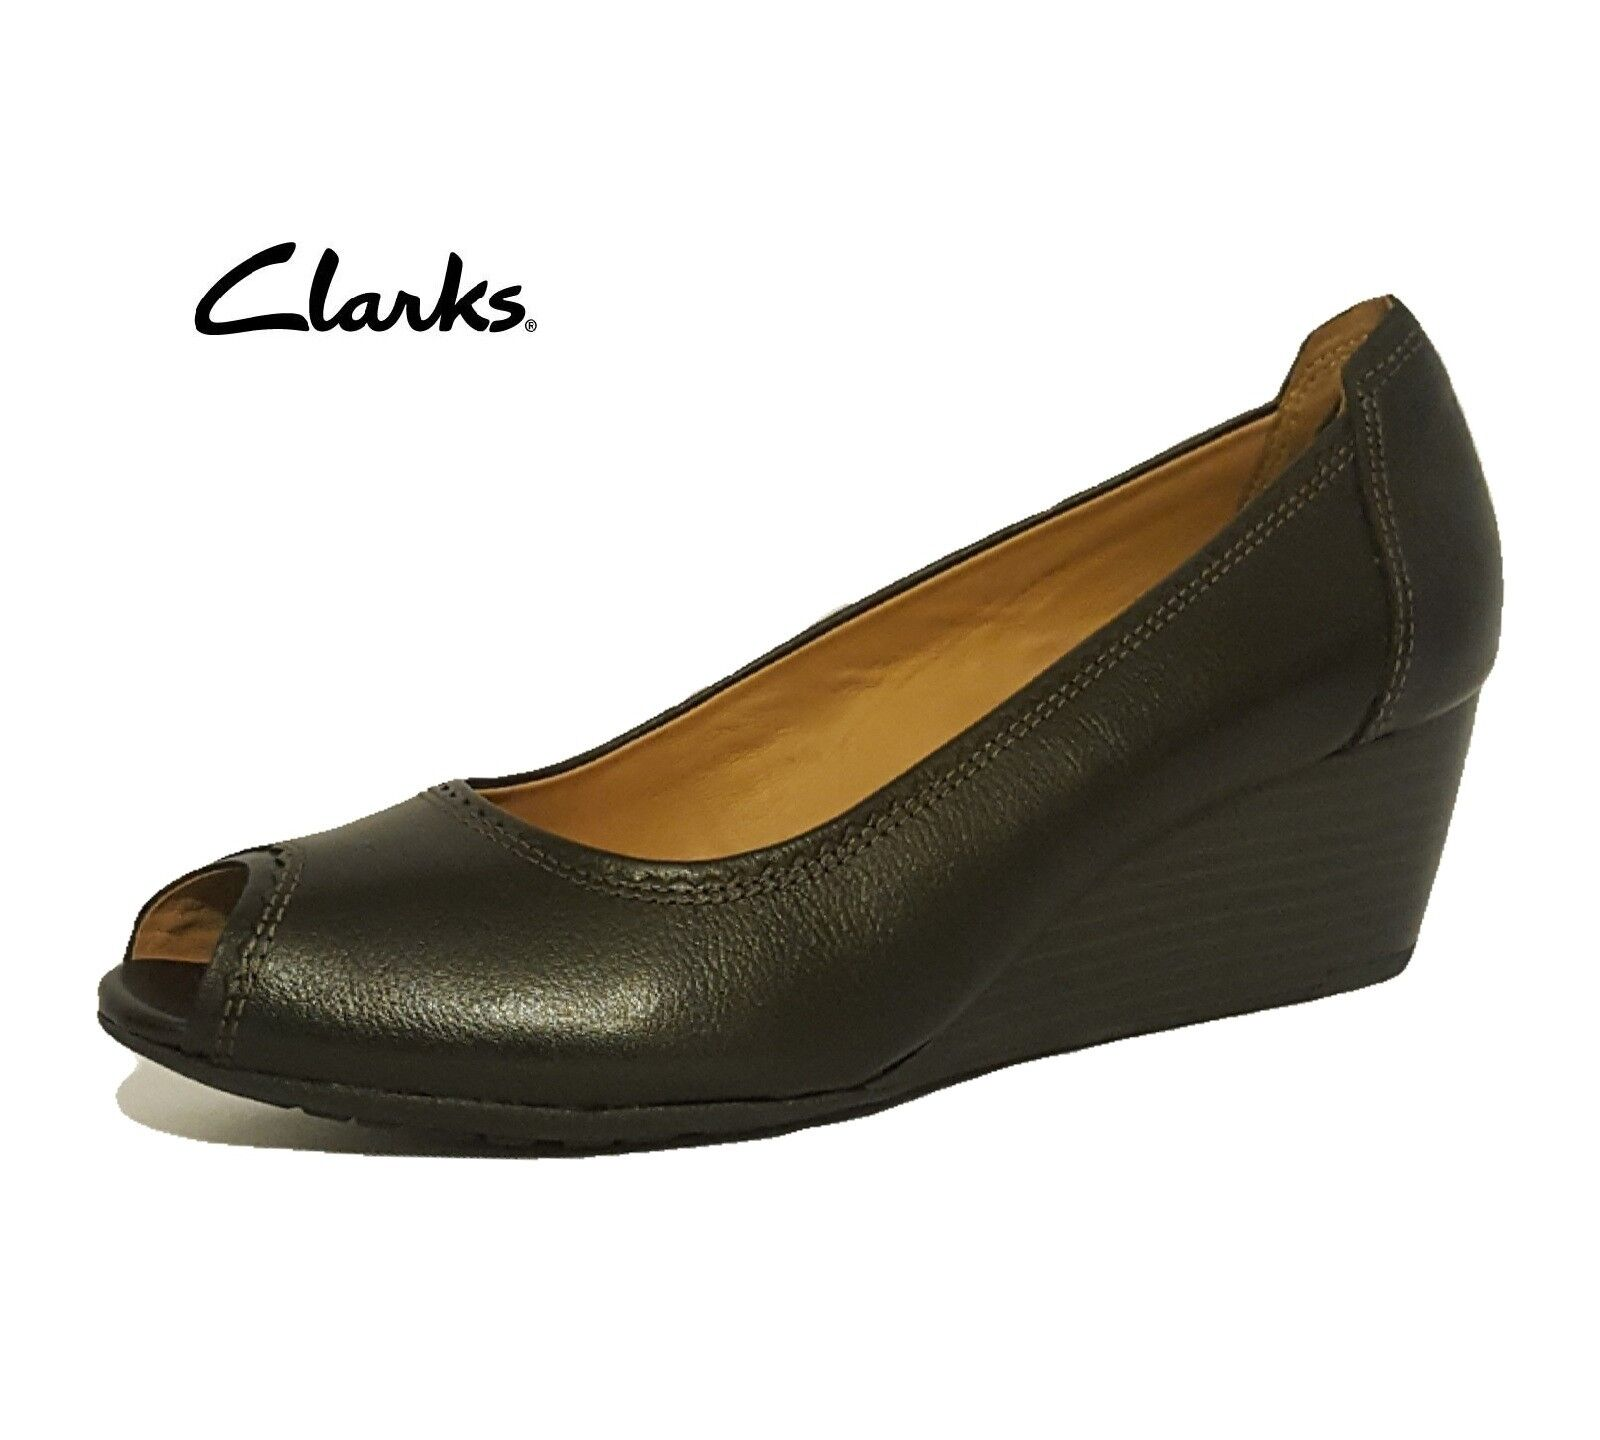 CLARKS BURMESE SUN BLACK LEATHER WEDGES PEEP TOE COURT Schuhe LADIES UK SIZE 7.5